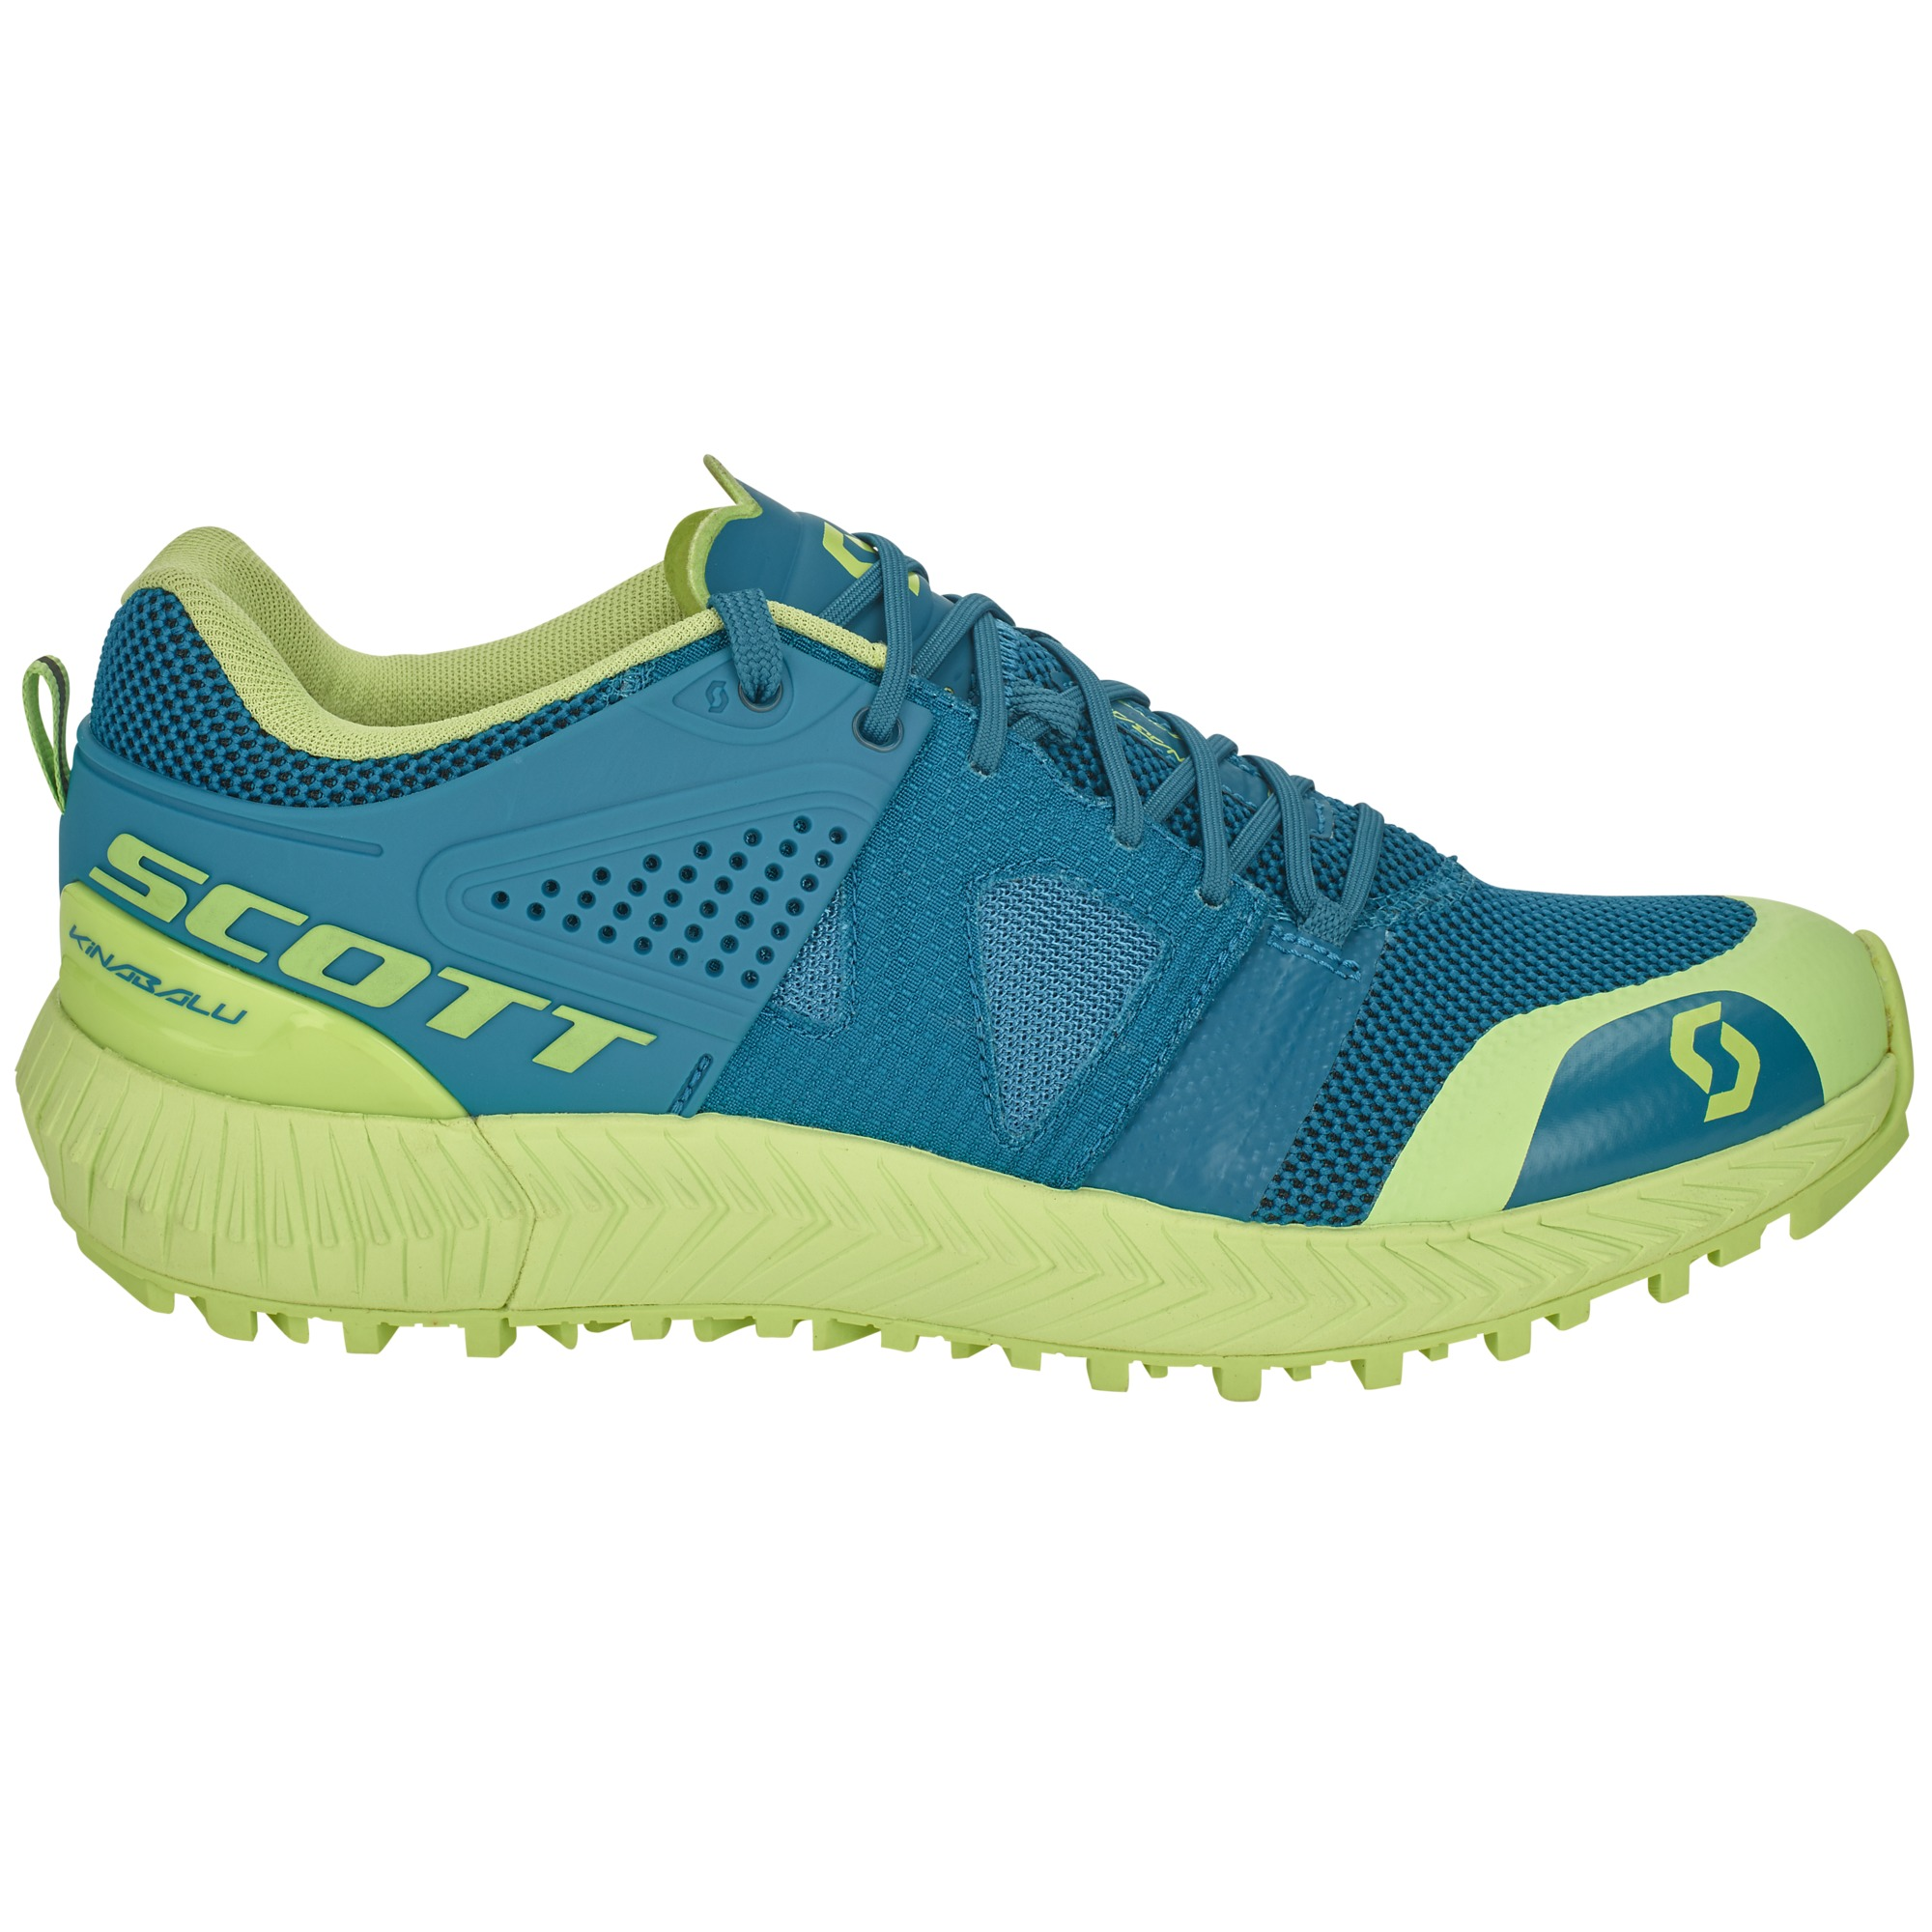 Scarpe da donna SCOTT Kinabalu Power